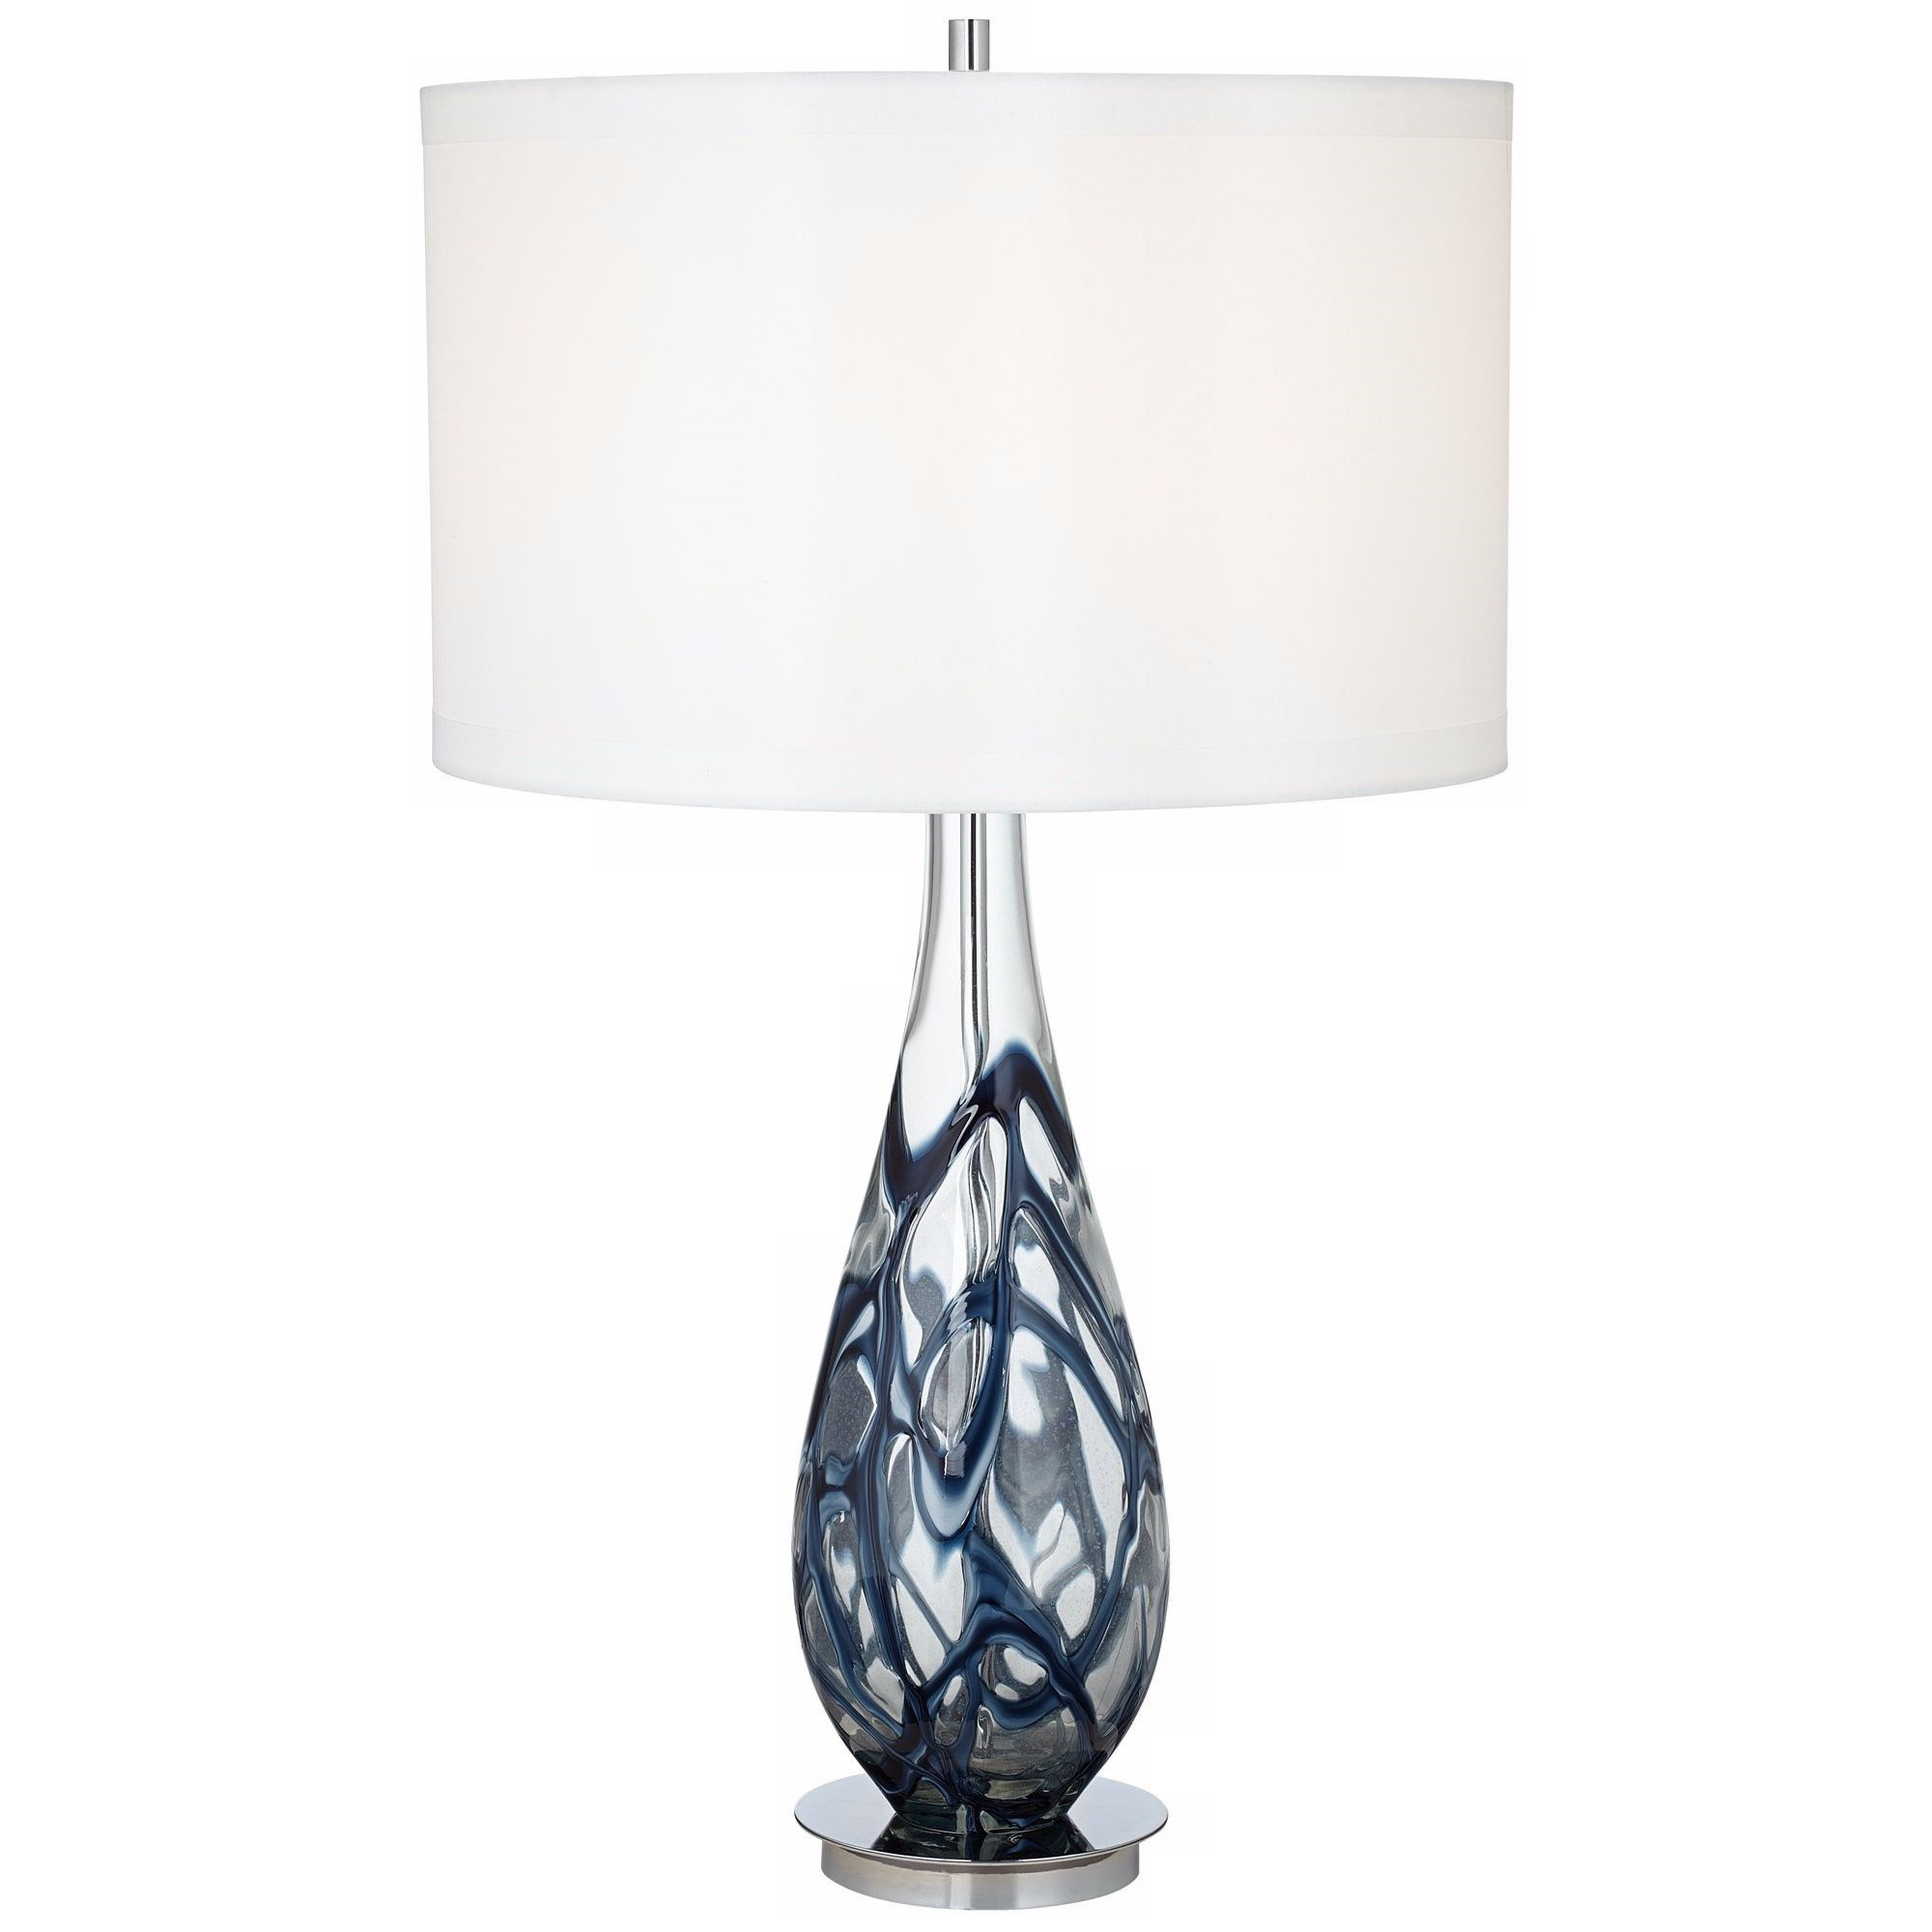 Table Lamps Indigo Swirl Art Glass Table Lamp at Bennett's Furniture and Mattresses